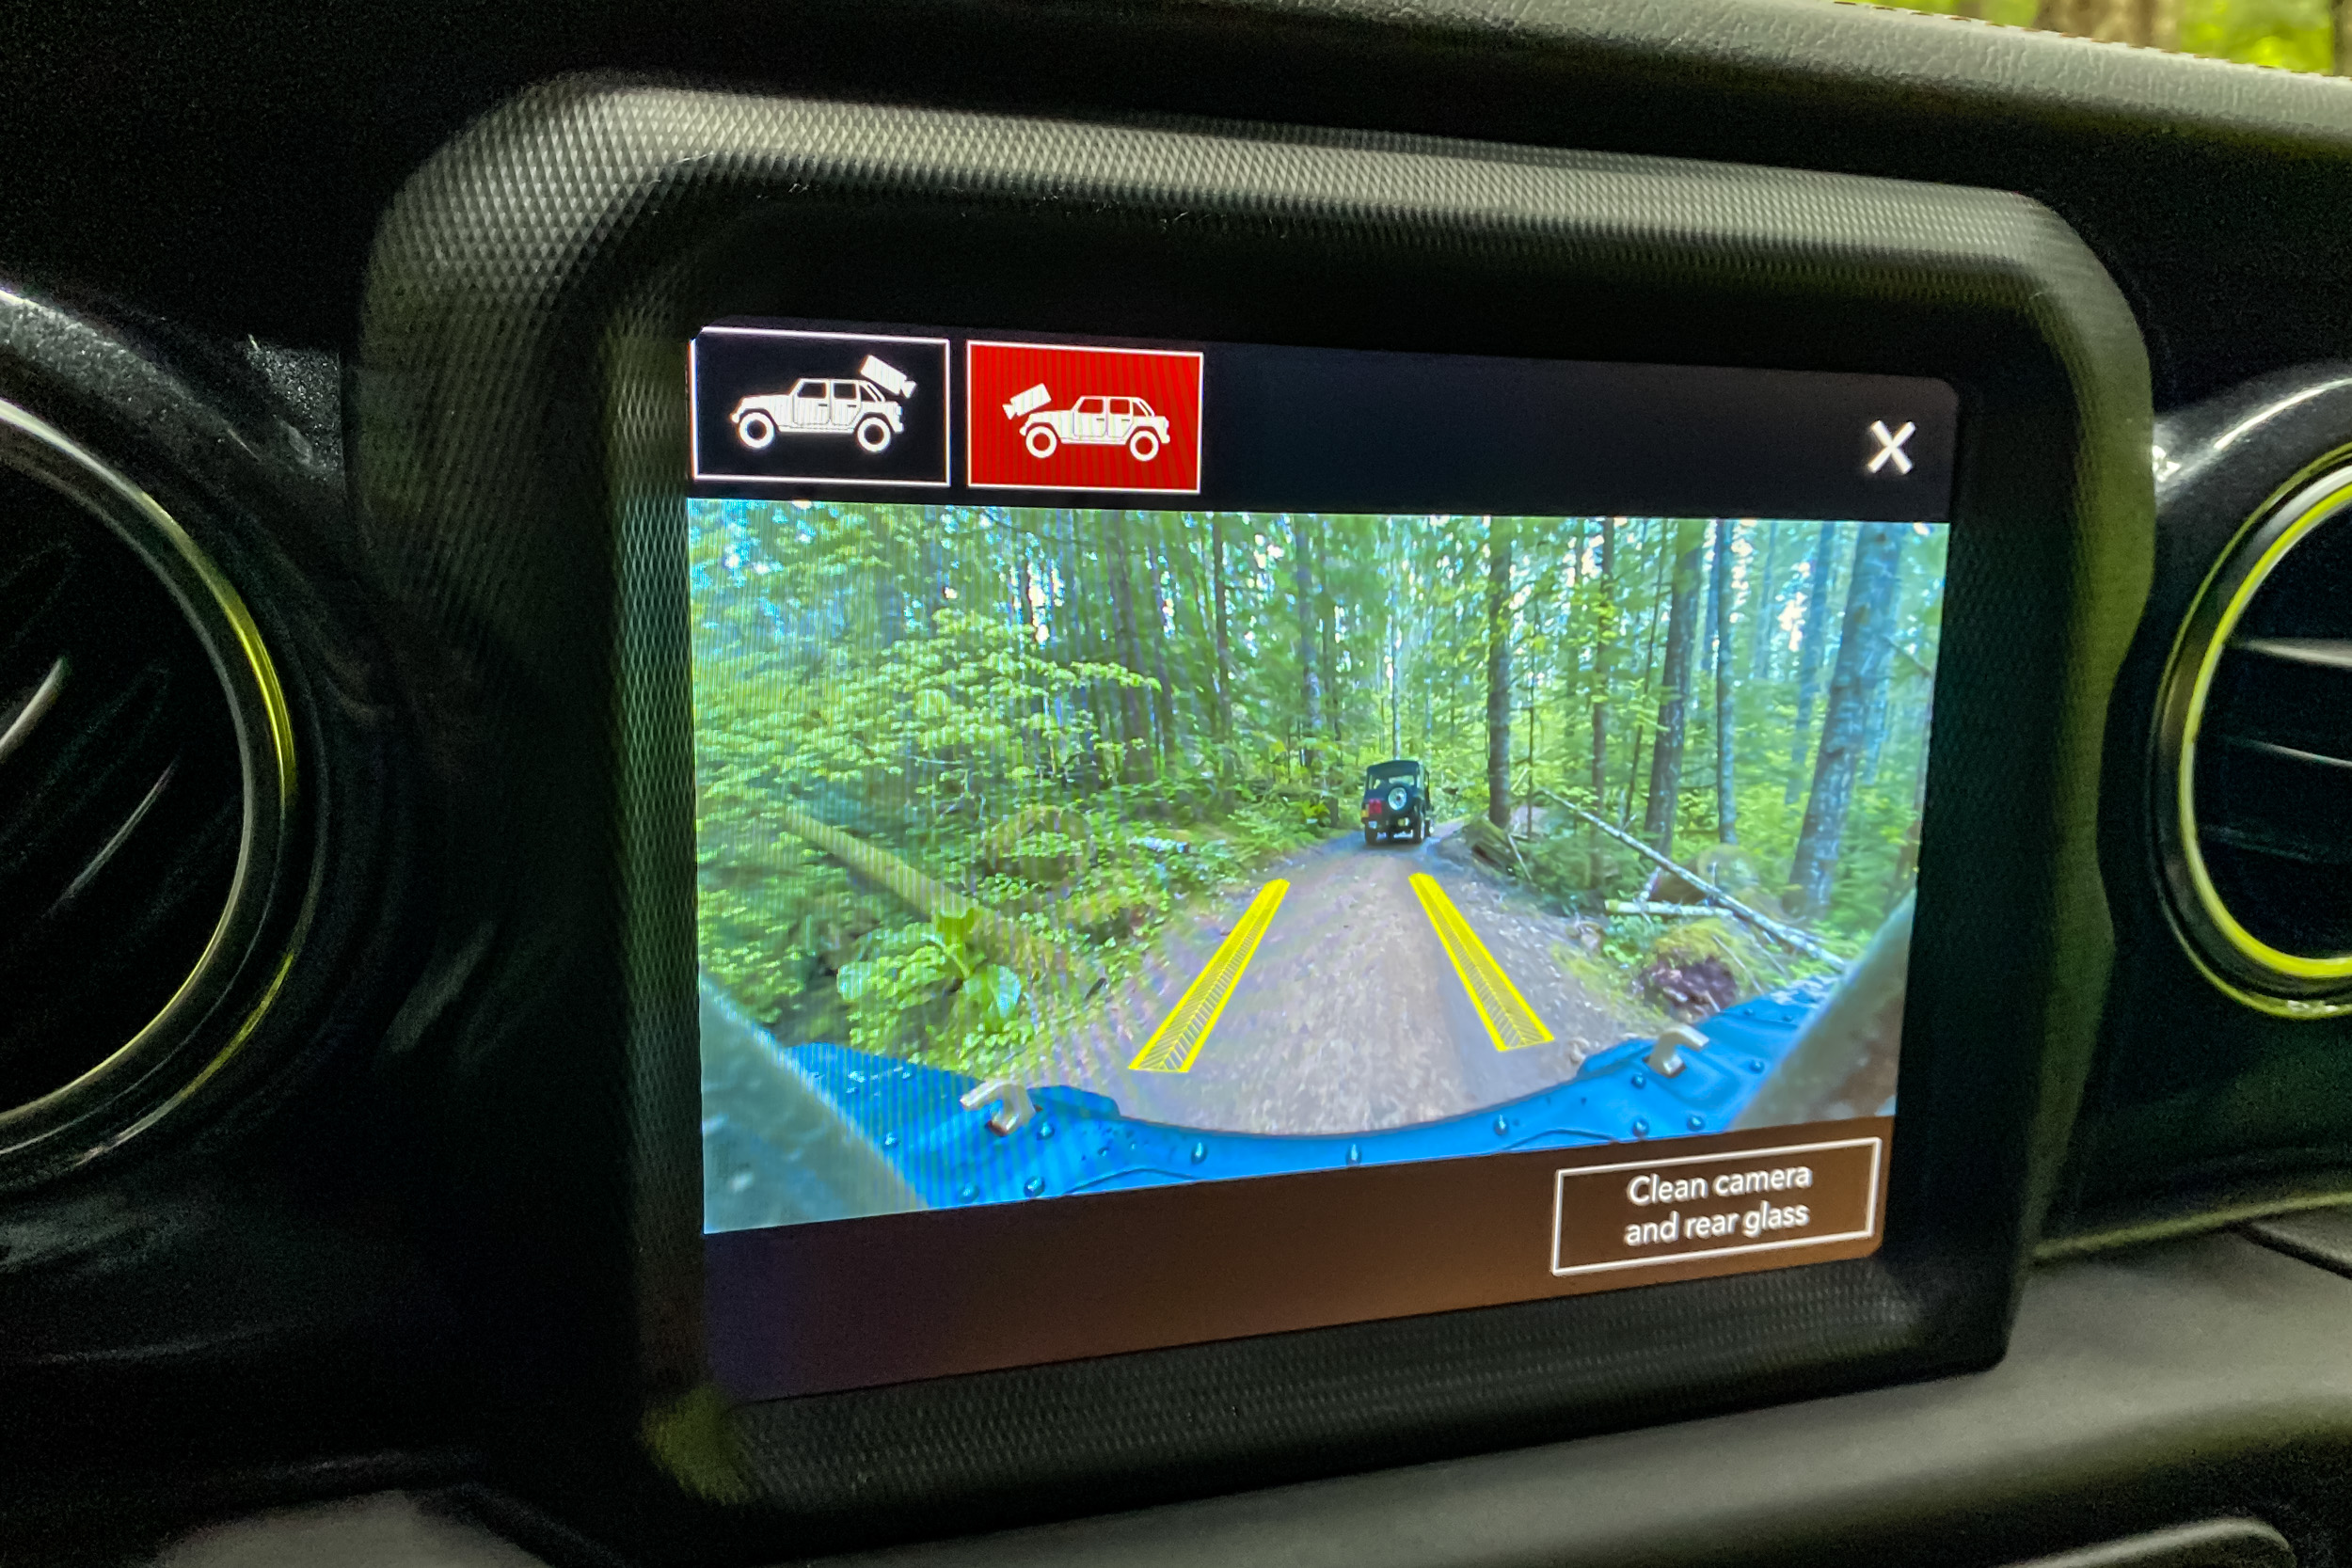 2021 Jeep Wrangler Rubicon 392 infotainment front camera view